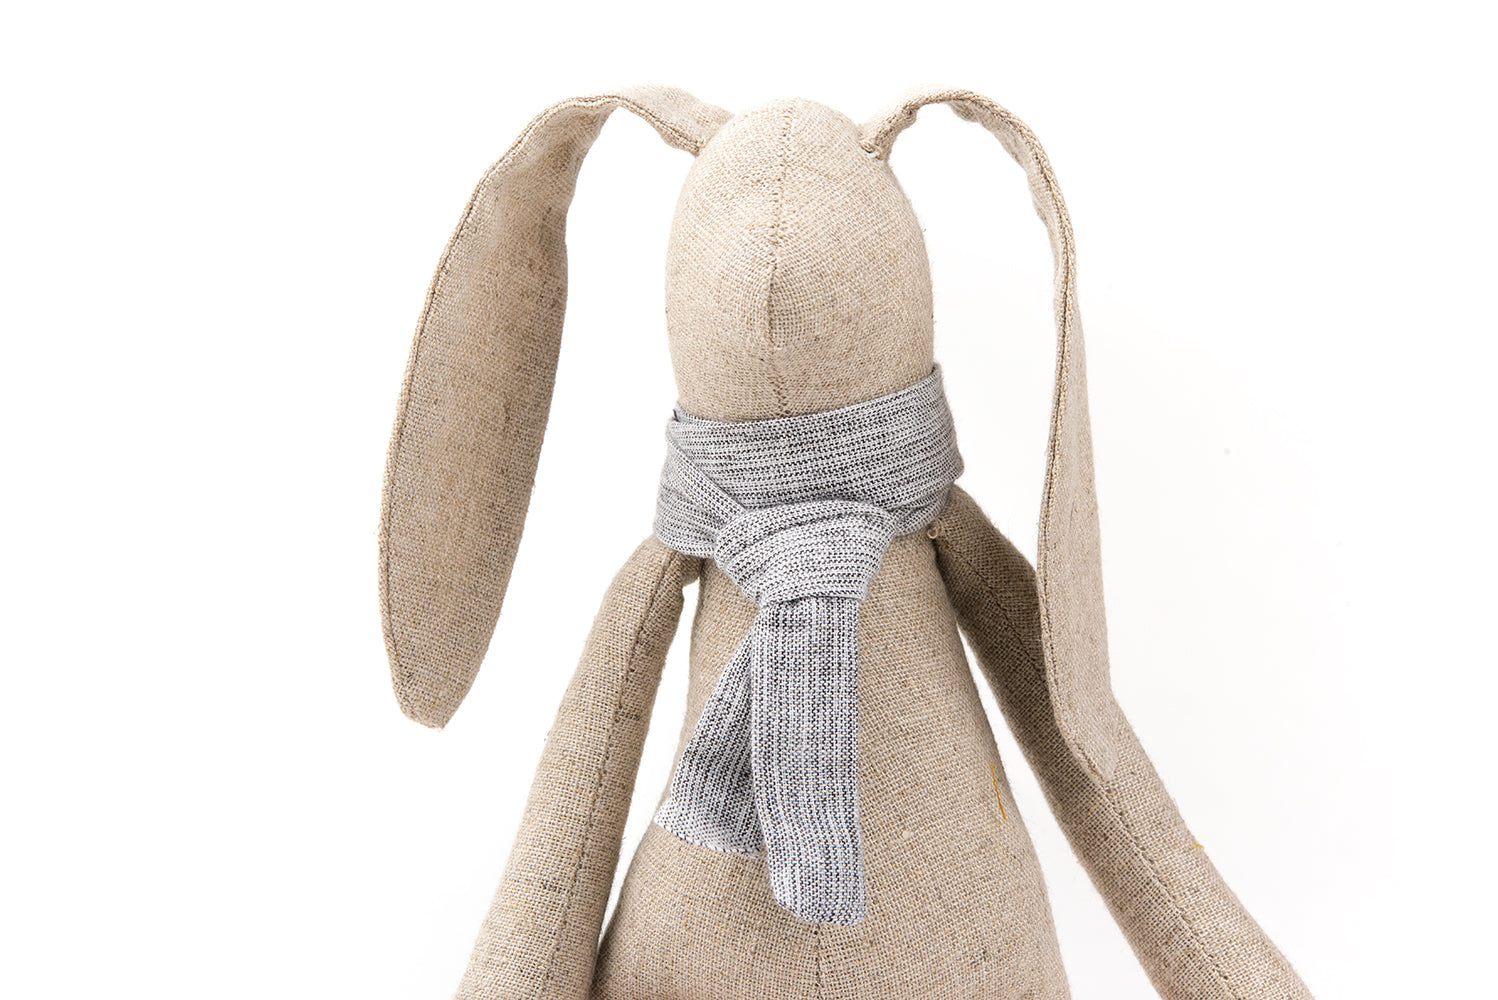 A pair of rabbit dolls Stuffed bunny dolls Plush rabbit doll Linen Handmade dolls Set of 2 dolls Nursery decor Heirloom gift SMALL Rabbits